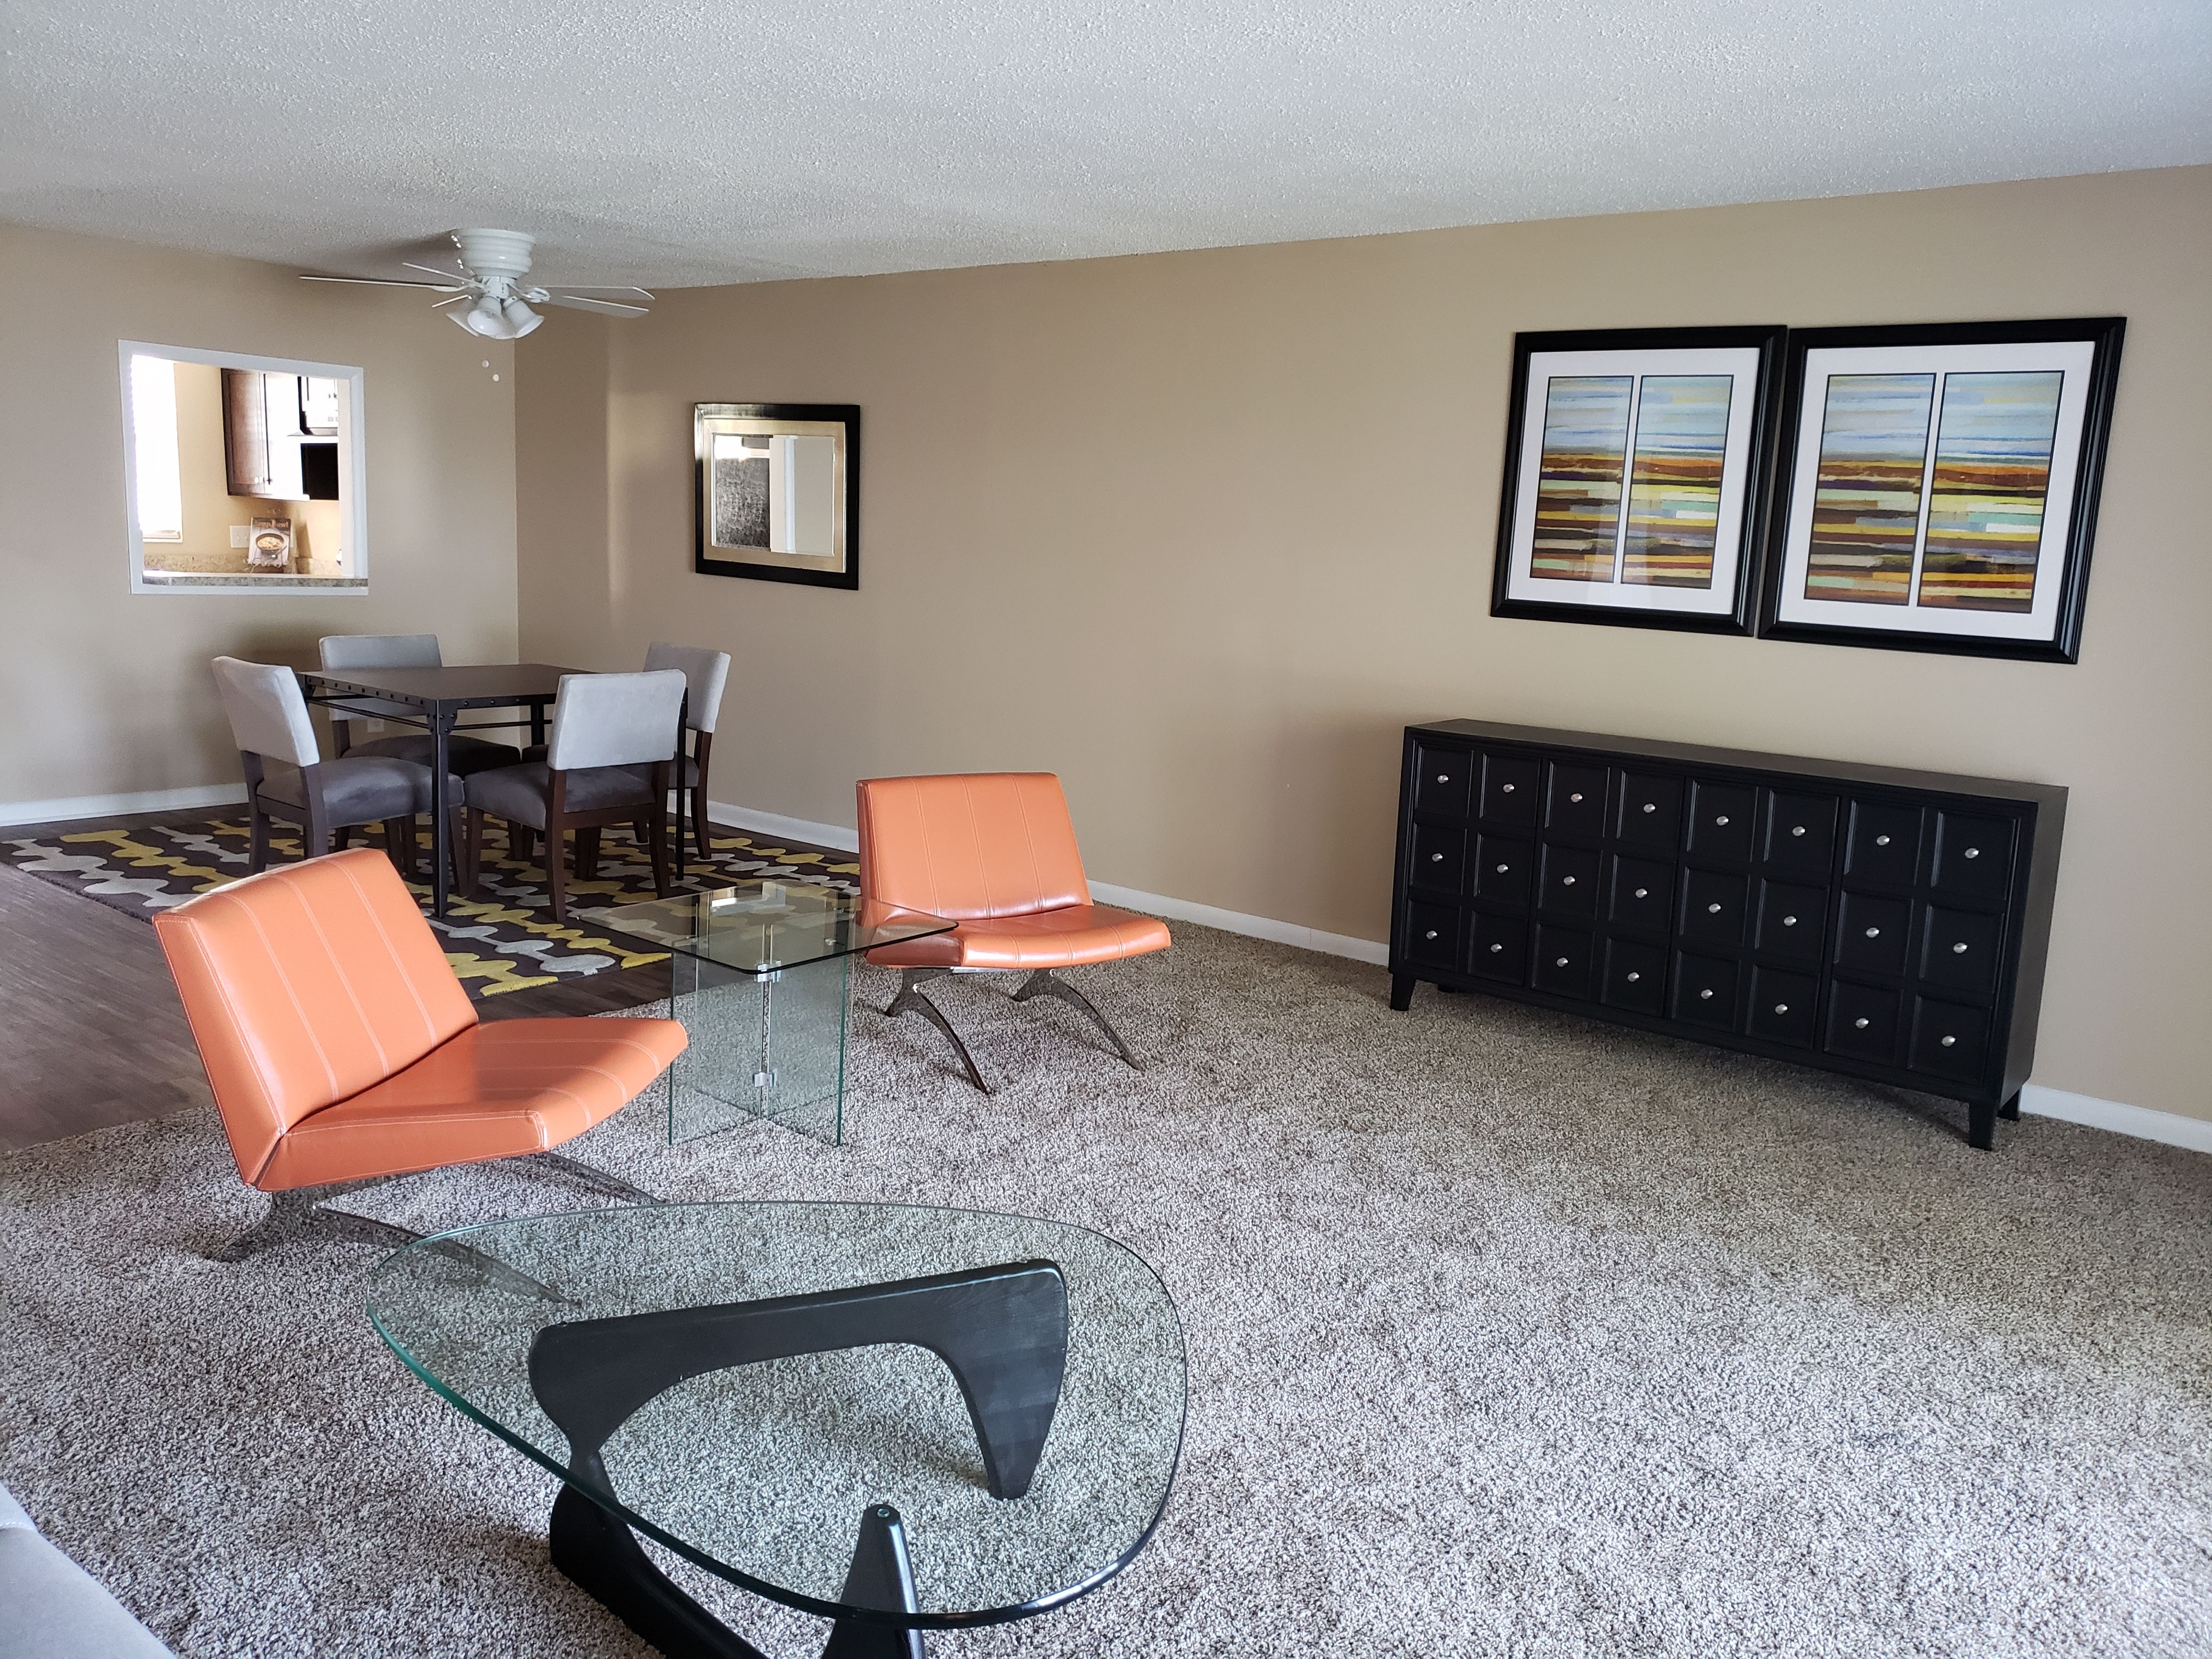 Modern Furniture Makes This Living Room Pop At Heritage On The